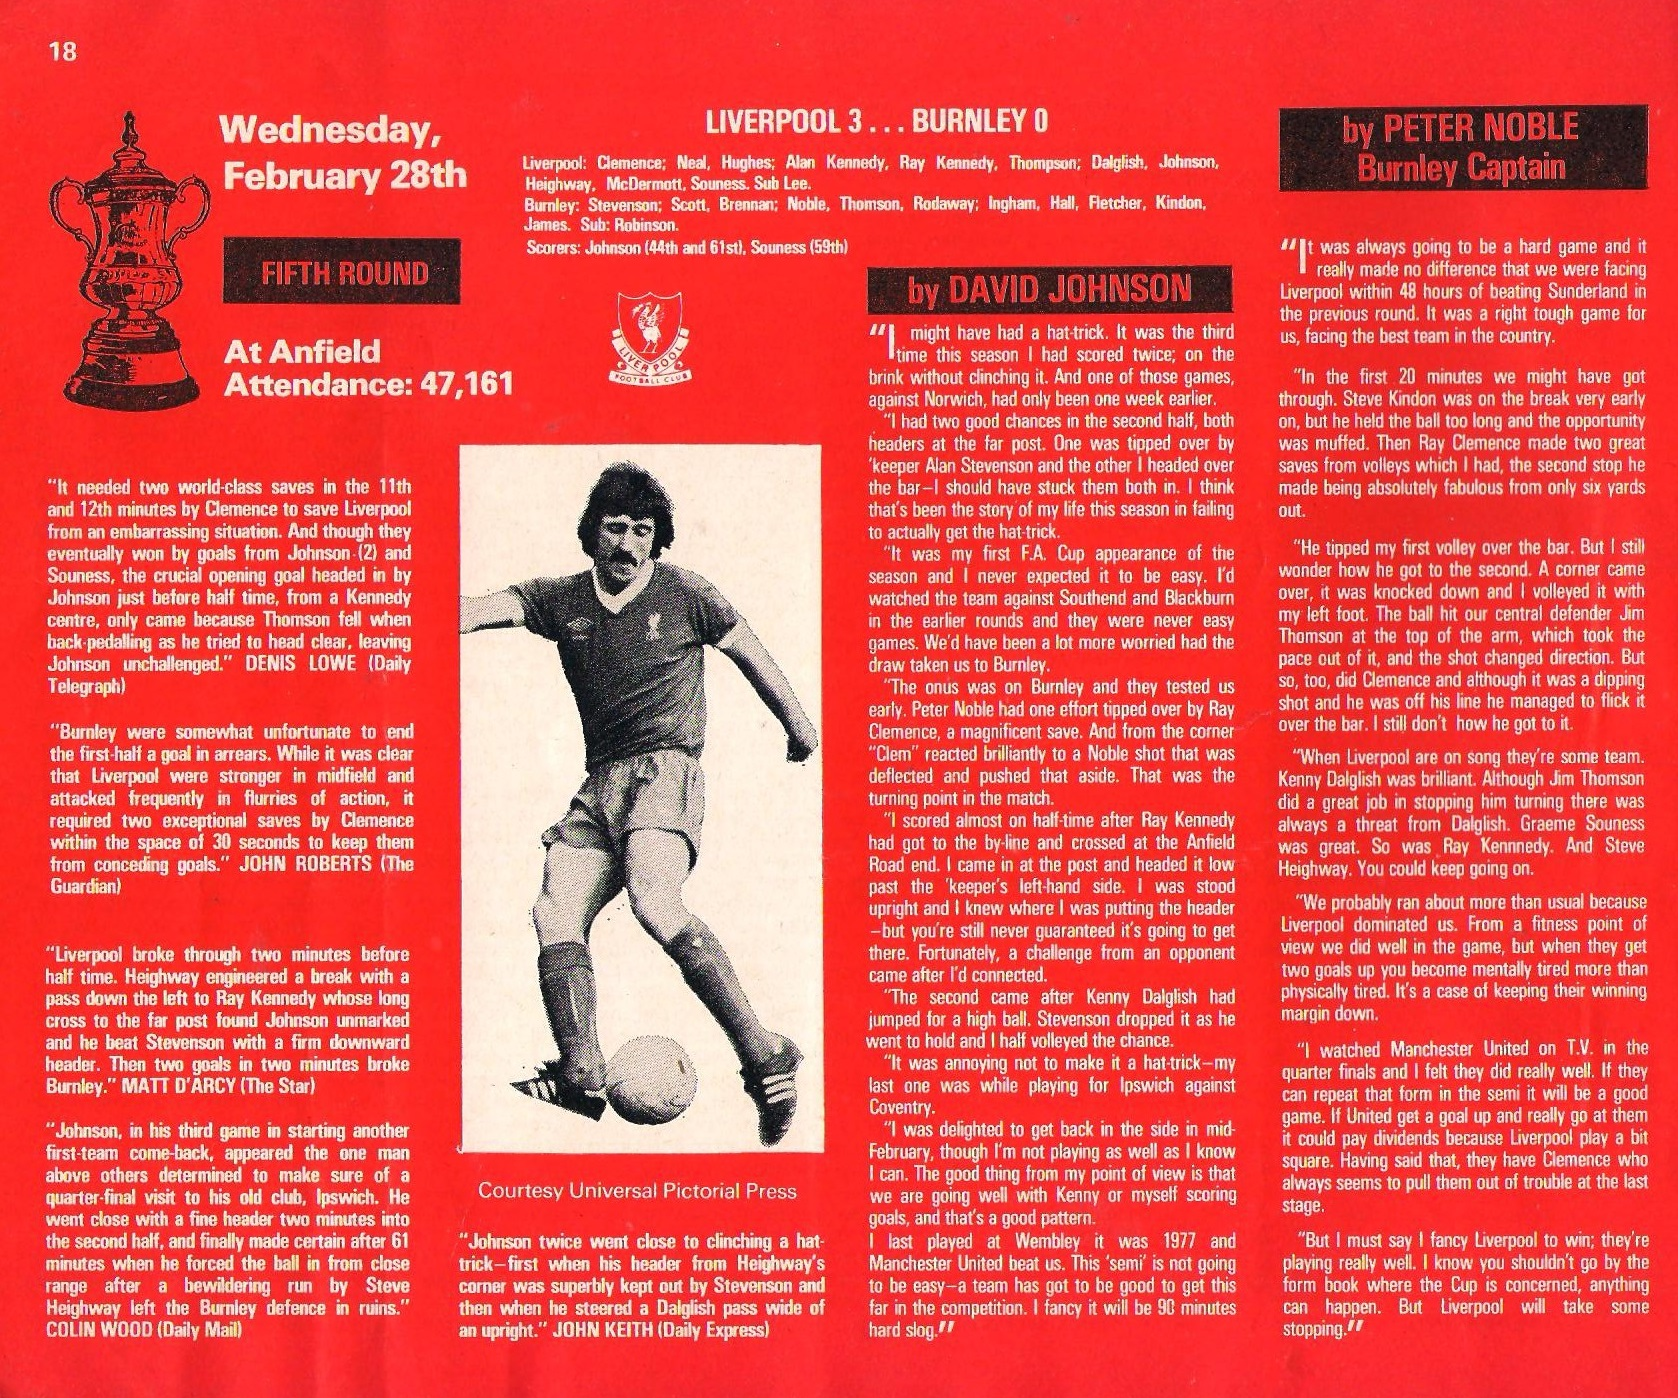 Game Review on Burnley on 28 February 1979